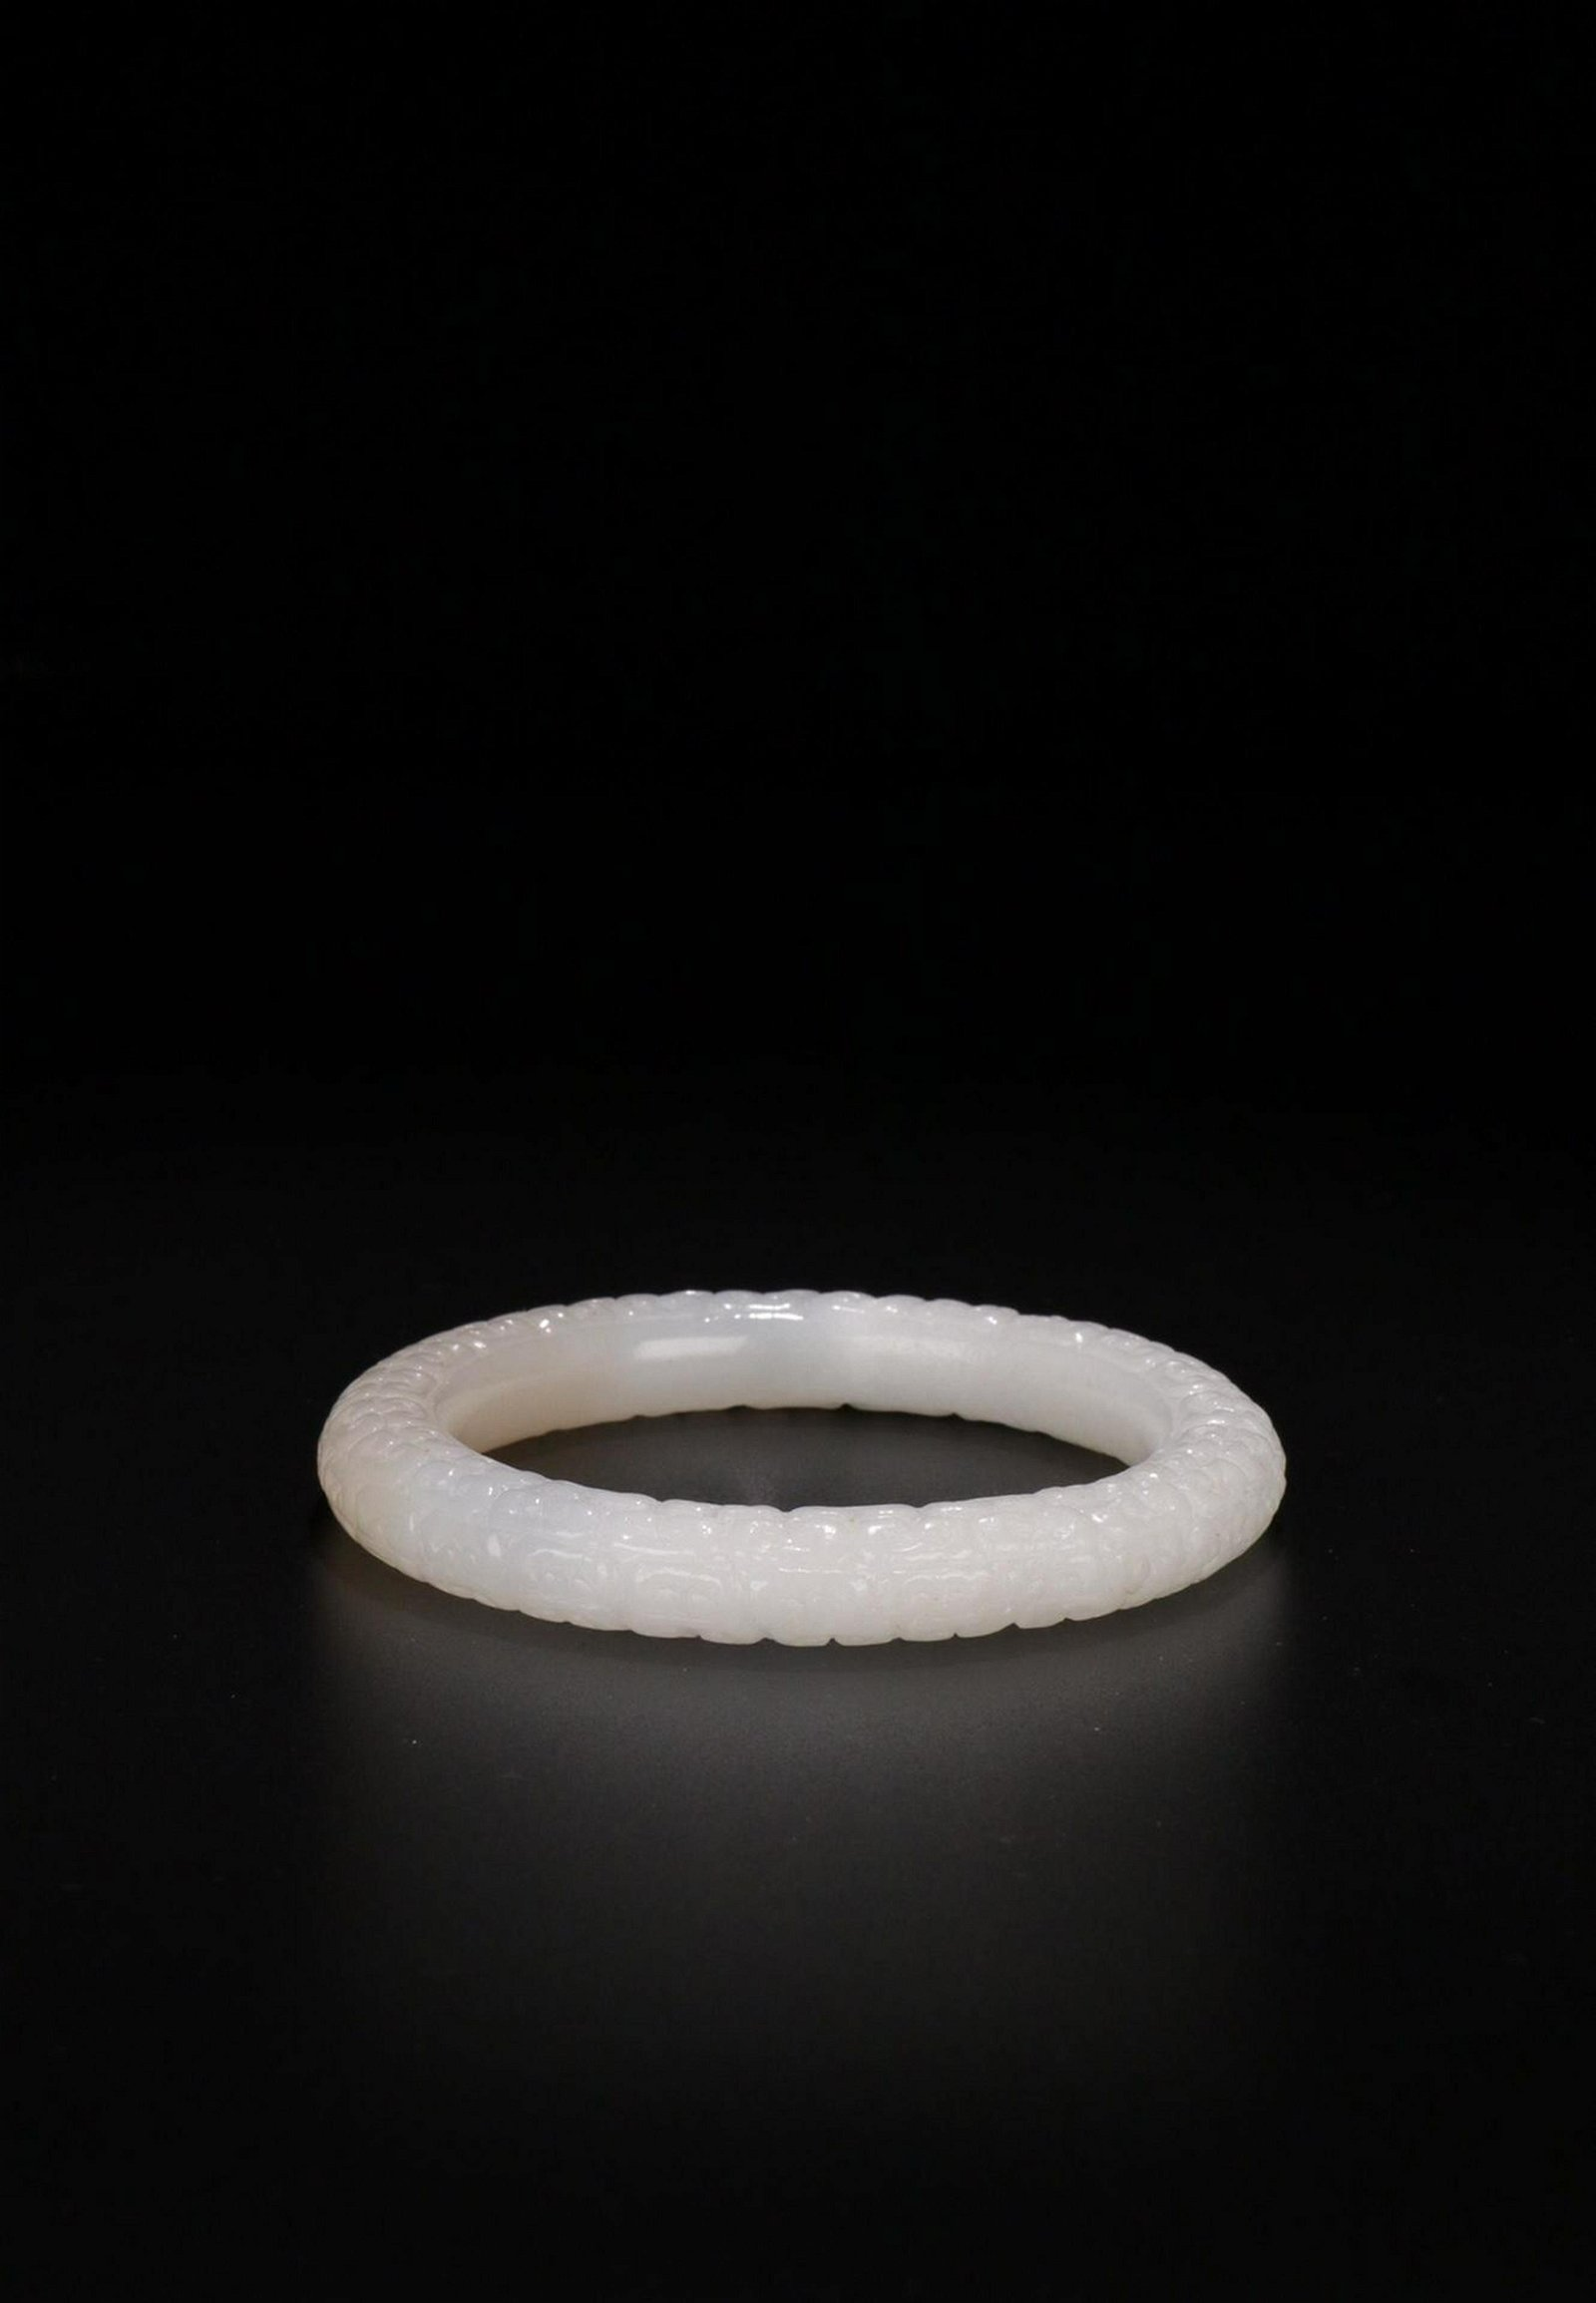 A HETIAN JADE COULD PATTERN BANGLE